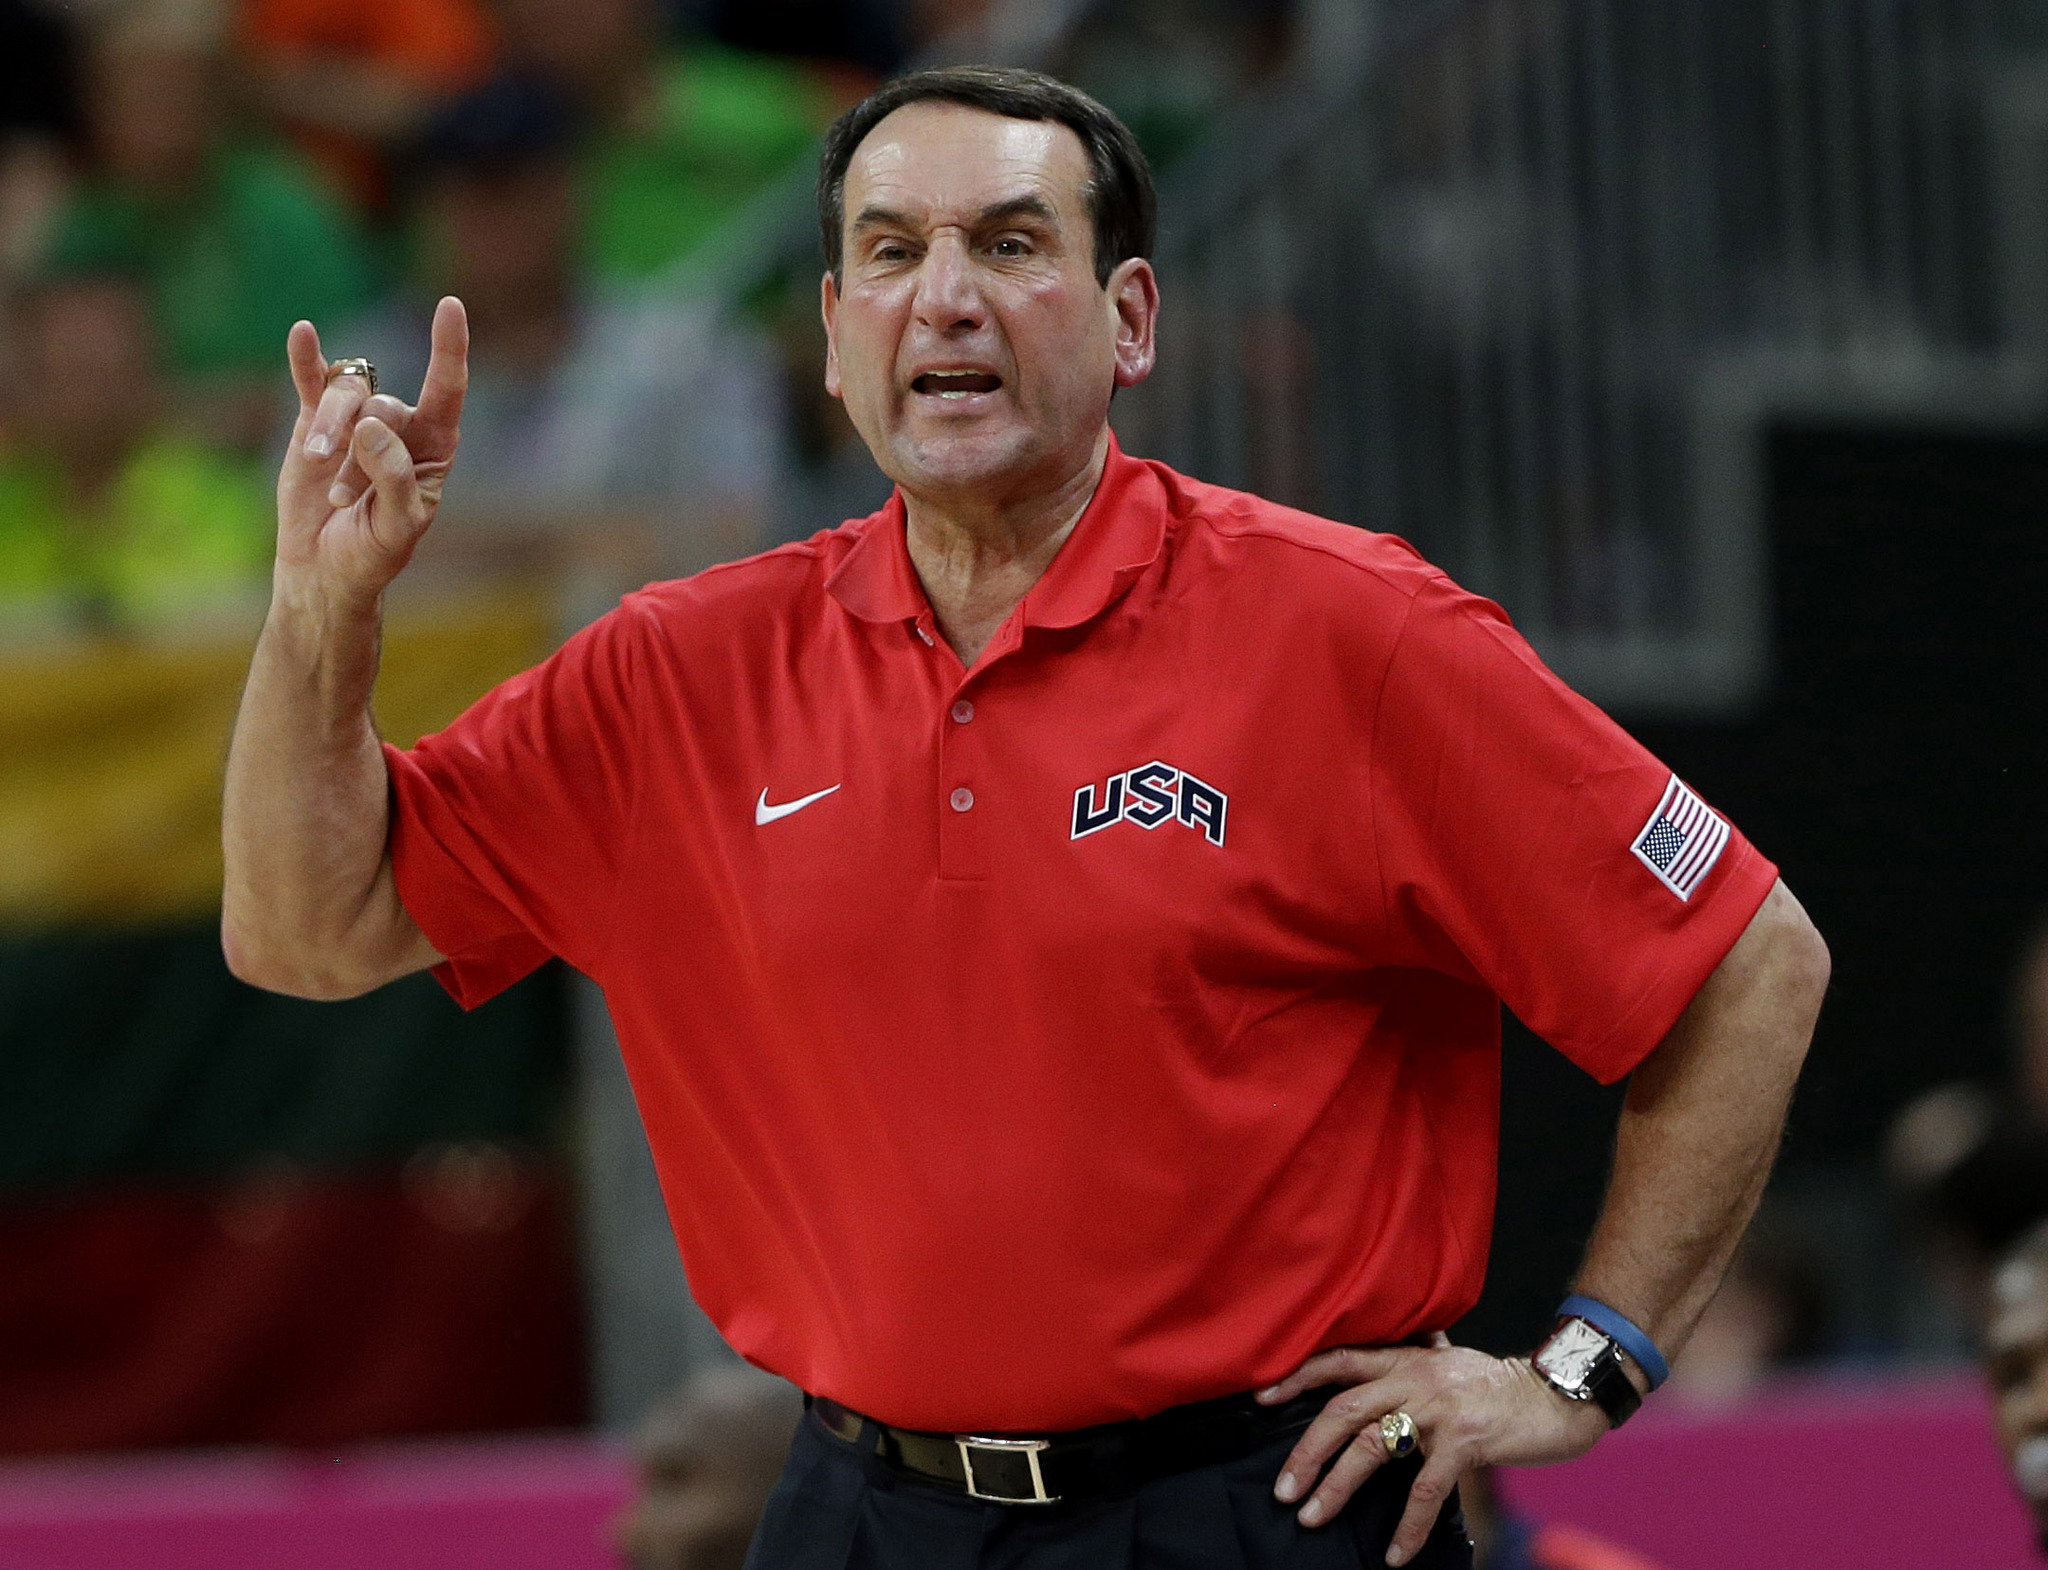 Dukes Mike Krzyzewski Returning To Coach USA Basketball